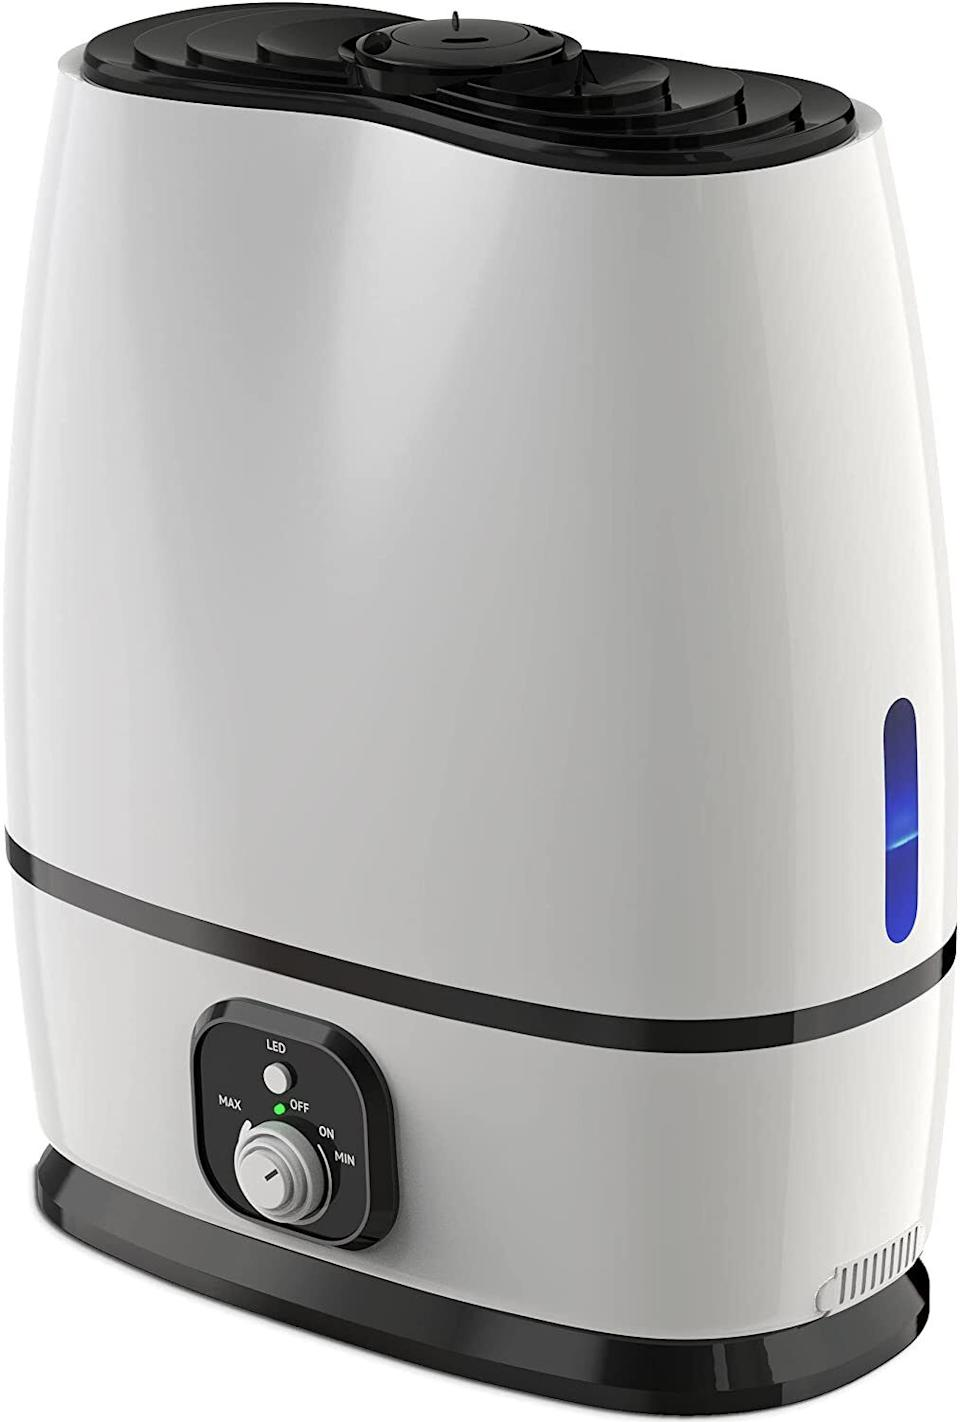 """It comescomplete with an essential oil tray, auto shutoff, night-light and a large-capacity vaporizer.<br /><br /><strong>Promising review:</strong>""""I put this in my bedroom to help with sinus congestion. This thing is powerful. I cranked it up to high and woke up to 58% humidity, which makes you wake up feeling like you inhaled water. Turned it to low and got 49%, which ended up being about perfect. It can run for about three or four nights on low, and the oil diffuser works well if you put enough oil in it. I wake up feeling the least congested in the 48–50% range."""" — <a href=""""https://www.amazon.com/gp/customer-reviews/R3JJDC18QH7ACN?&linkCode=ll2&tag=huffpost-bfsyndication-20&linkId=ab64d4e1195c3069f3a28d4336560b56&language=en_US&ref_=as_li_ss_tl"""" target=""""_blank"""" rel=""""noopener noreferrer"""">Amazon Customer</a><br /><br /><strong><a href=""""https://www.amazon.com/dp/B074MP9DK2?&linkCode=ll1&tag=huffpost-bfsyndication-20&linkId=5c69ba1a86b15e46c4d76732e11de98f&language=en_US&ref_=as_li_ss_tl"""" target=""""_blank"""" rel=""""noopener noreferrer"""">Get it from Amazon for $52.95.</a></strong>"""